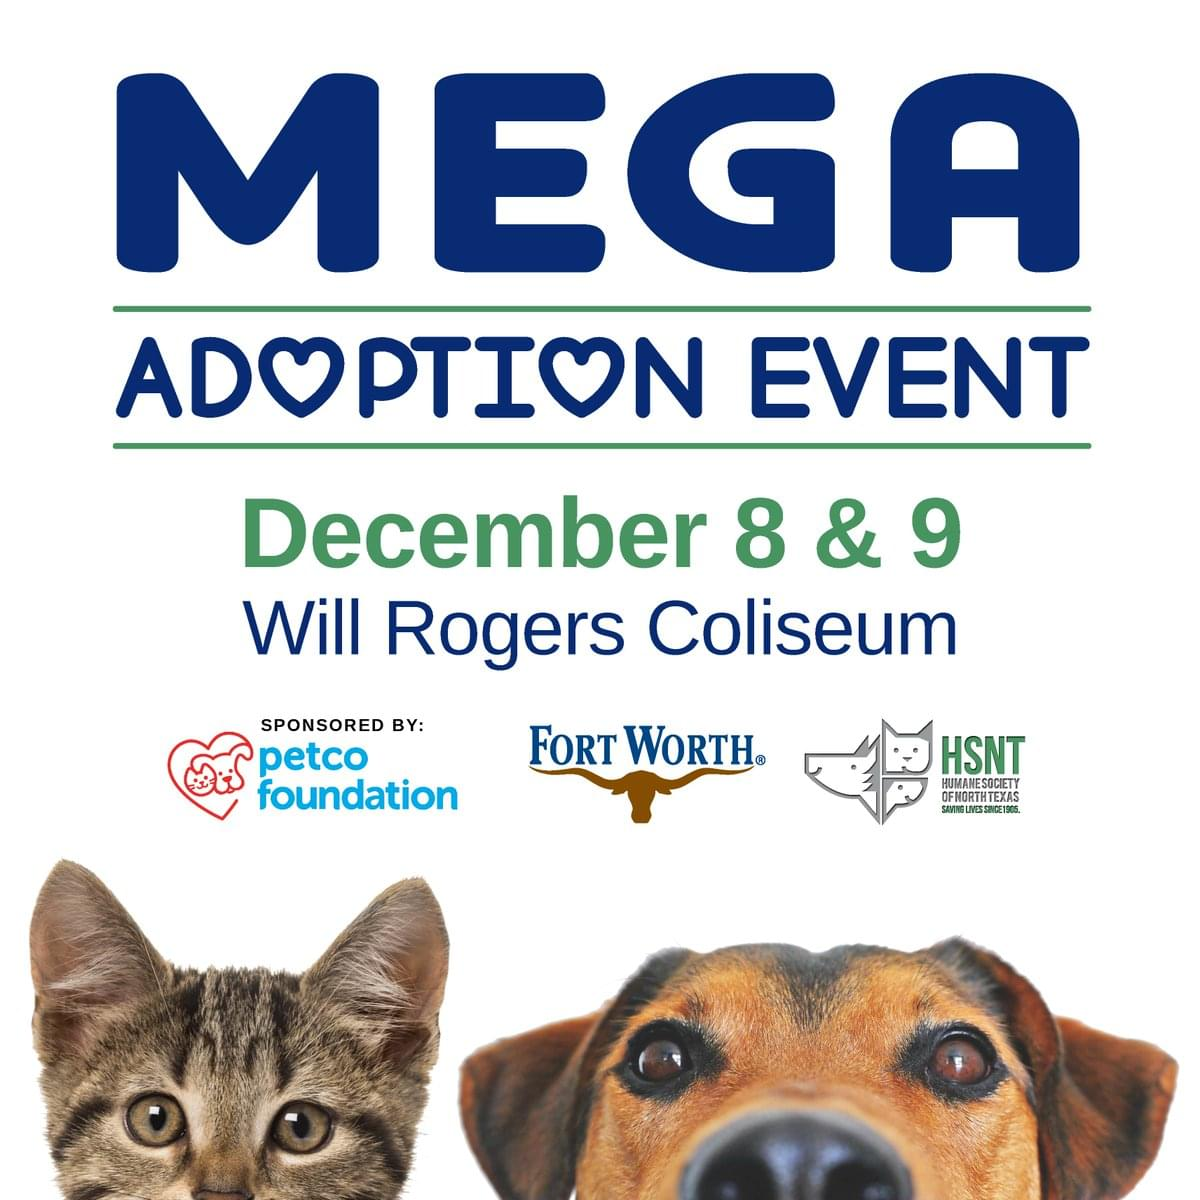 Mega Pet Adoption Event in Fort Worth This Weekend